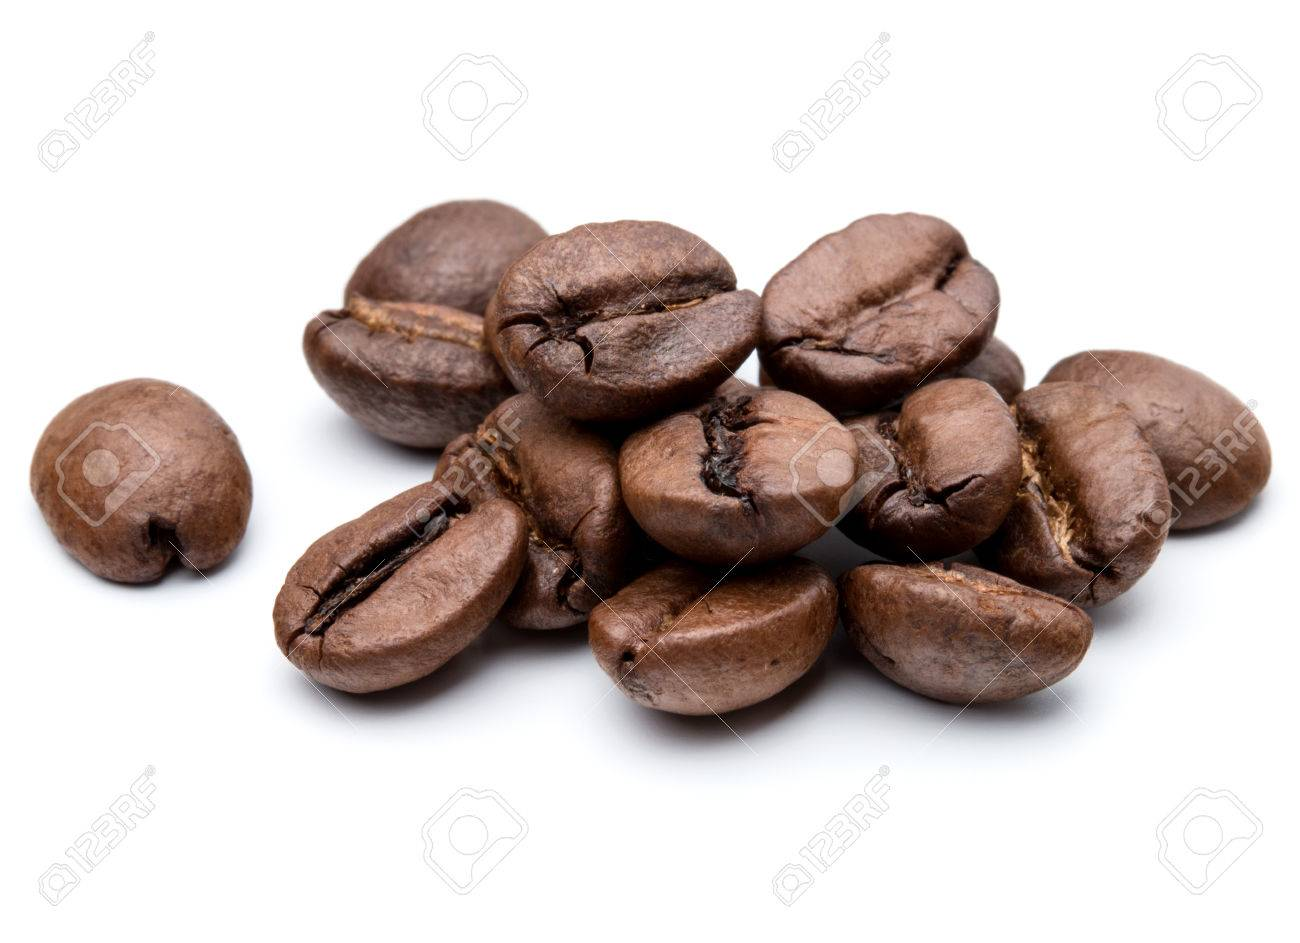 roasted coffee beans isolated in white background cutout - 41848980